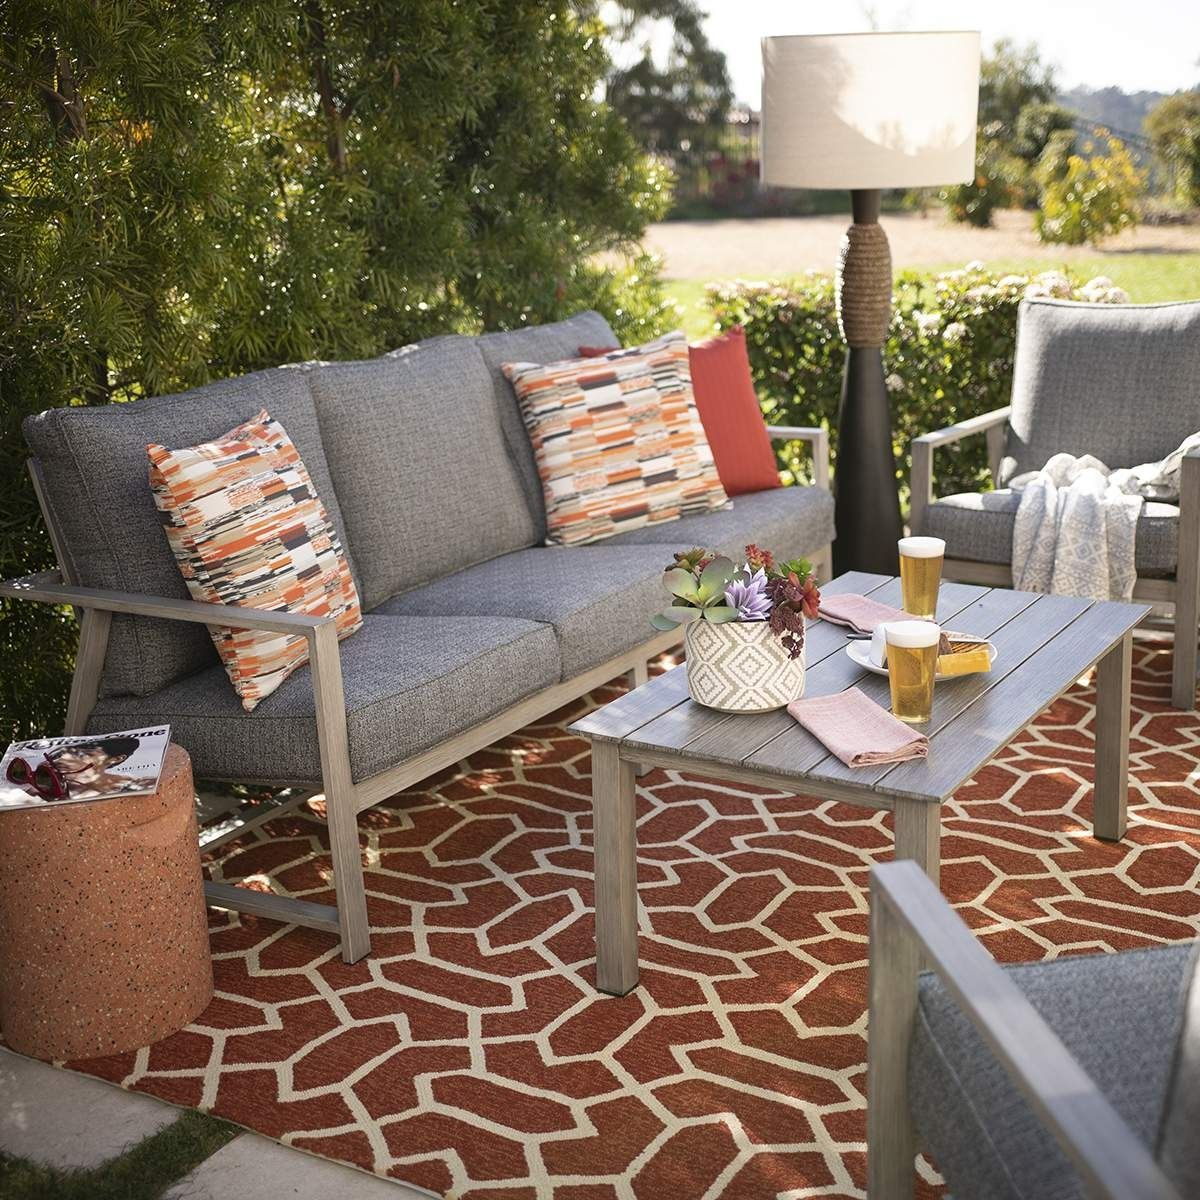 Amazing New Patio Sets At Jerome S Just In Time For Outdoor